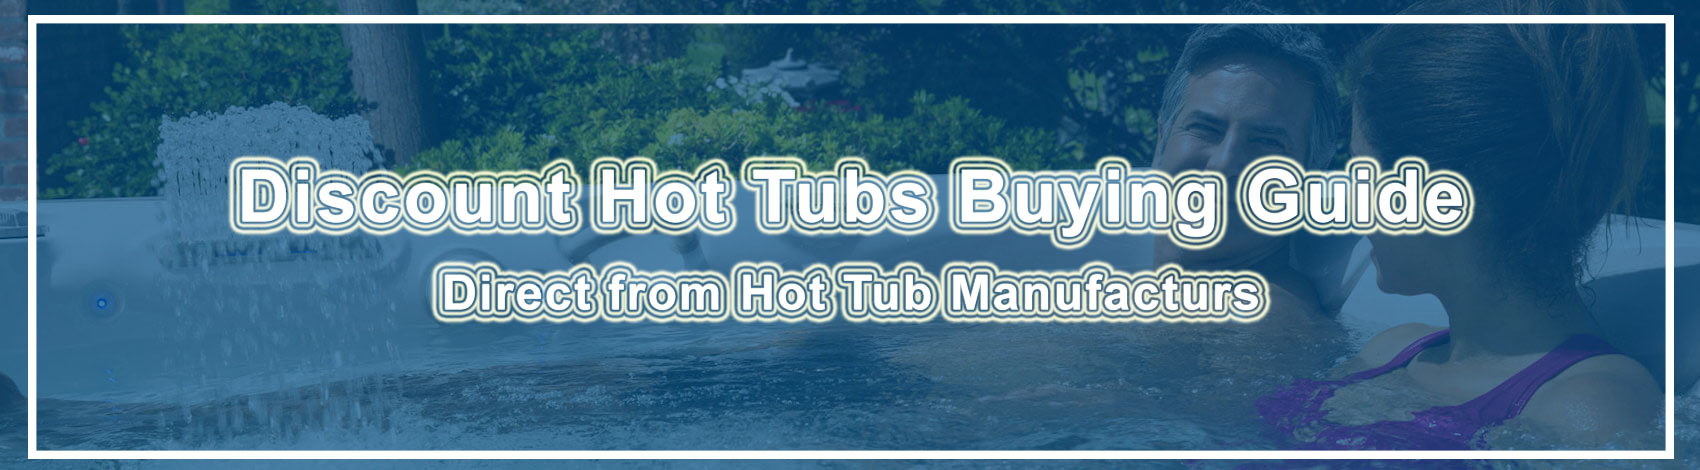 Discount Hot Tubs Buying Guide Direct from Manufacturing